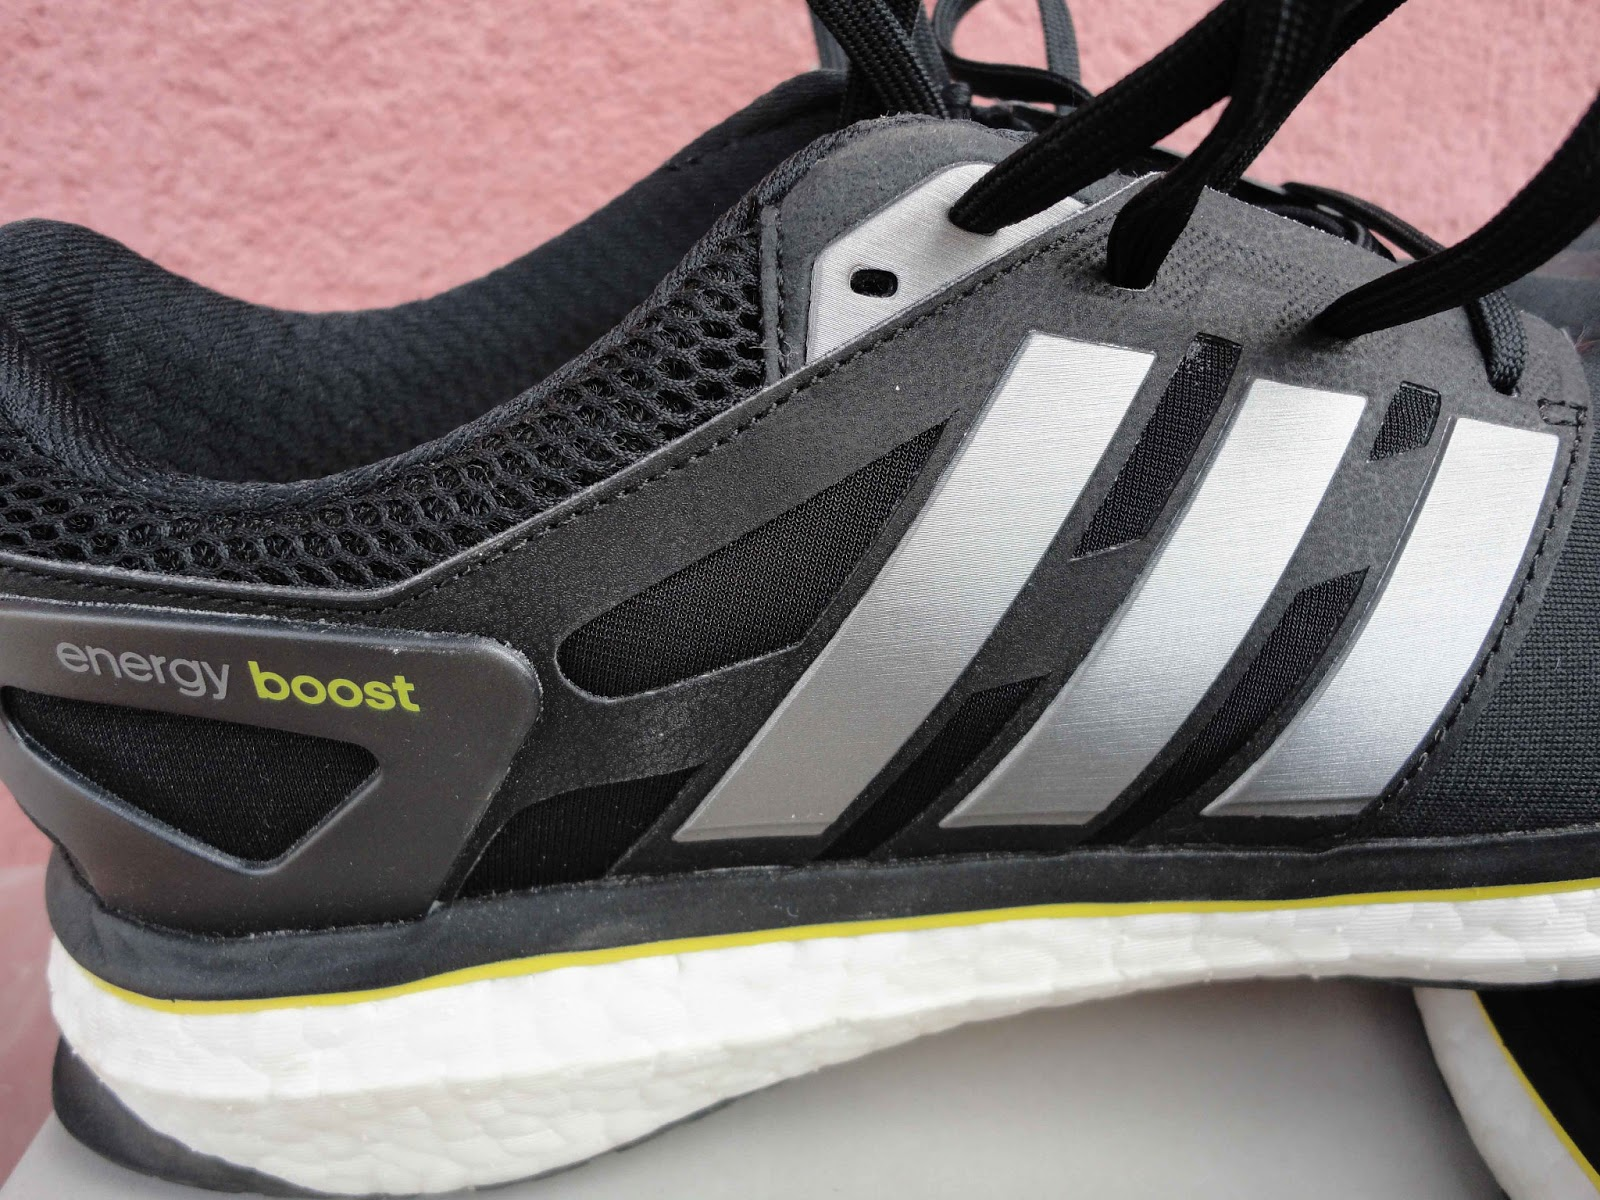 Filippo Running and Much More  Adidas Energy Boost - L intersuola ... 6eb05c5af7c